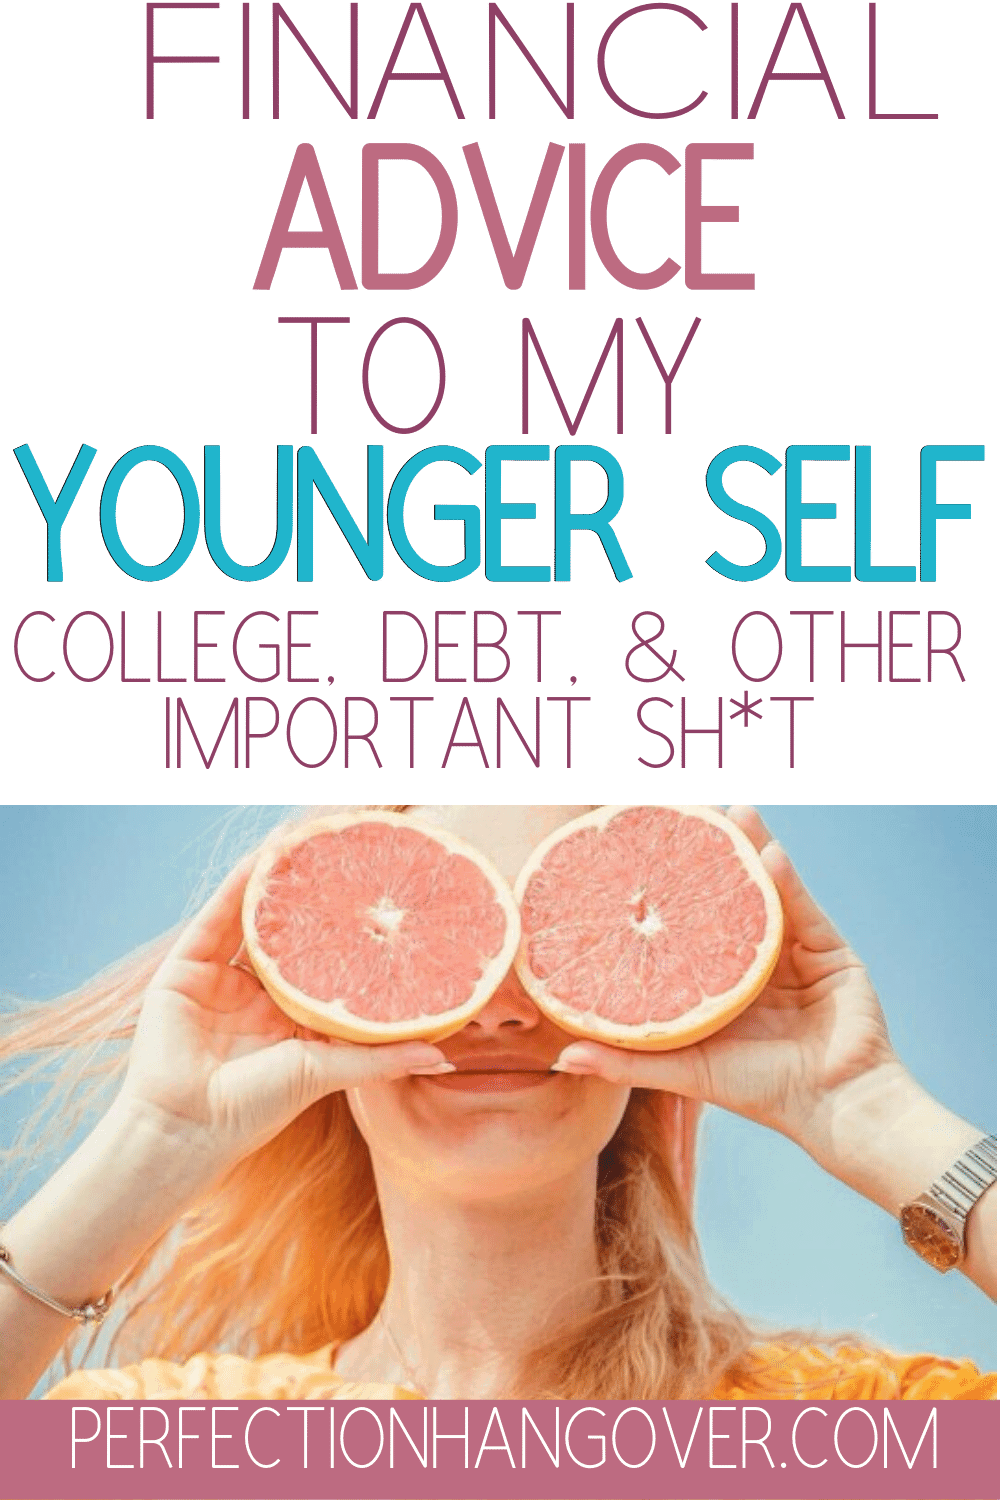 Financial Advice to my Younger Self - College, Debt, and Other Money Tips